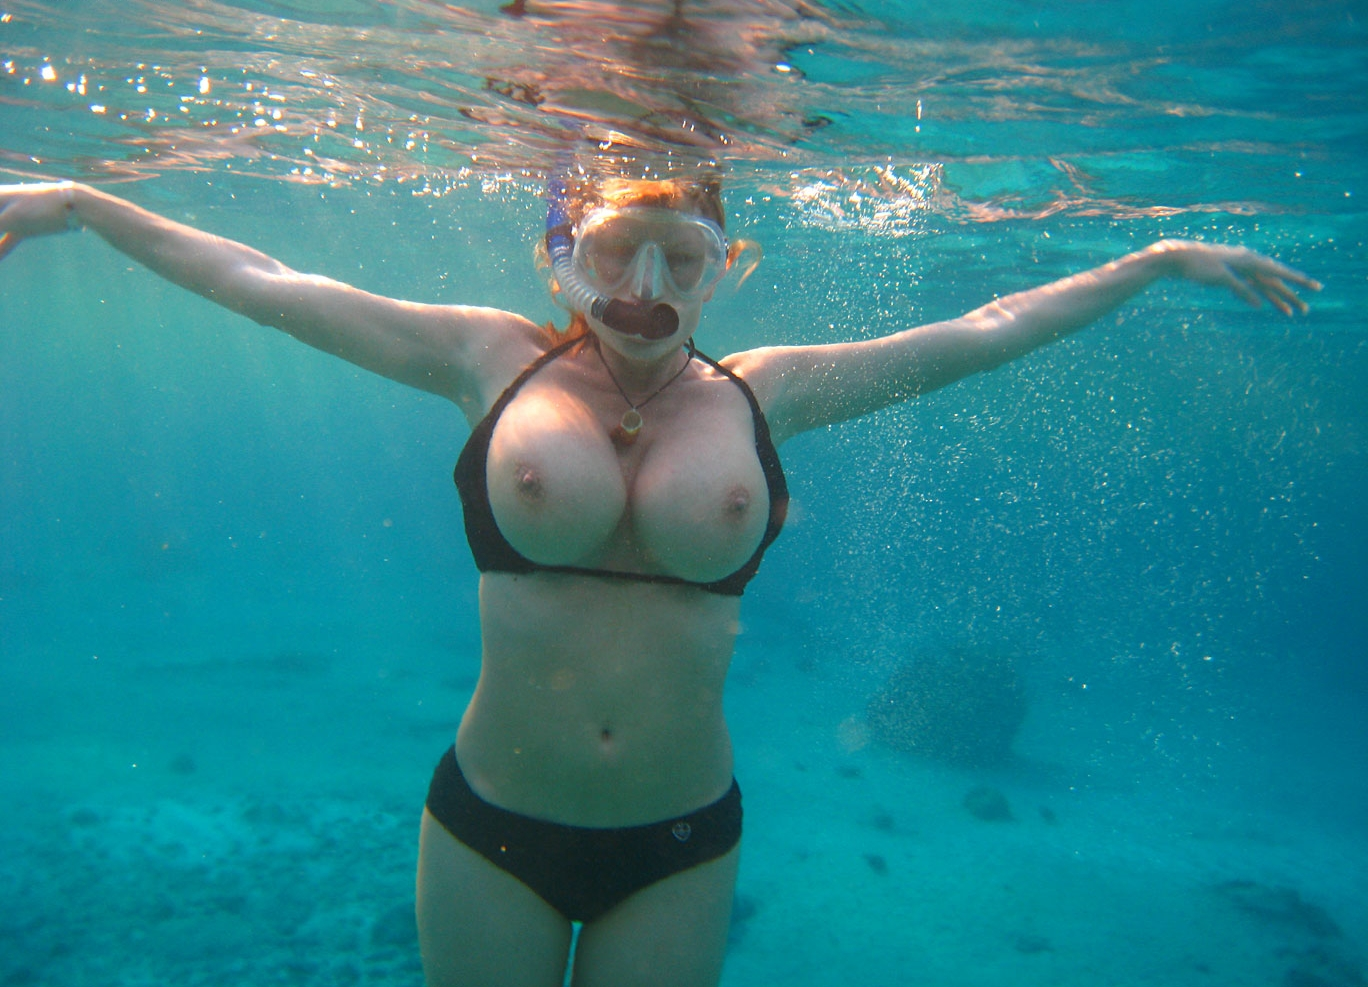 Hot naked swimmer women have thought